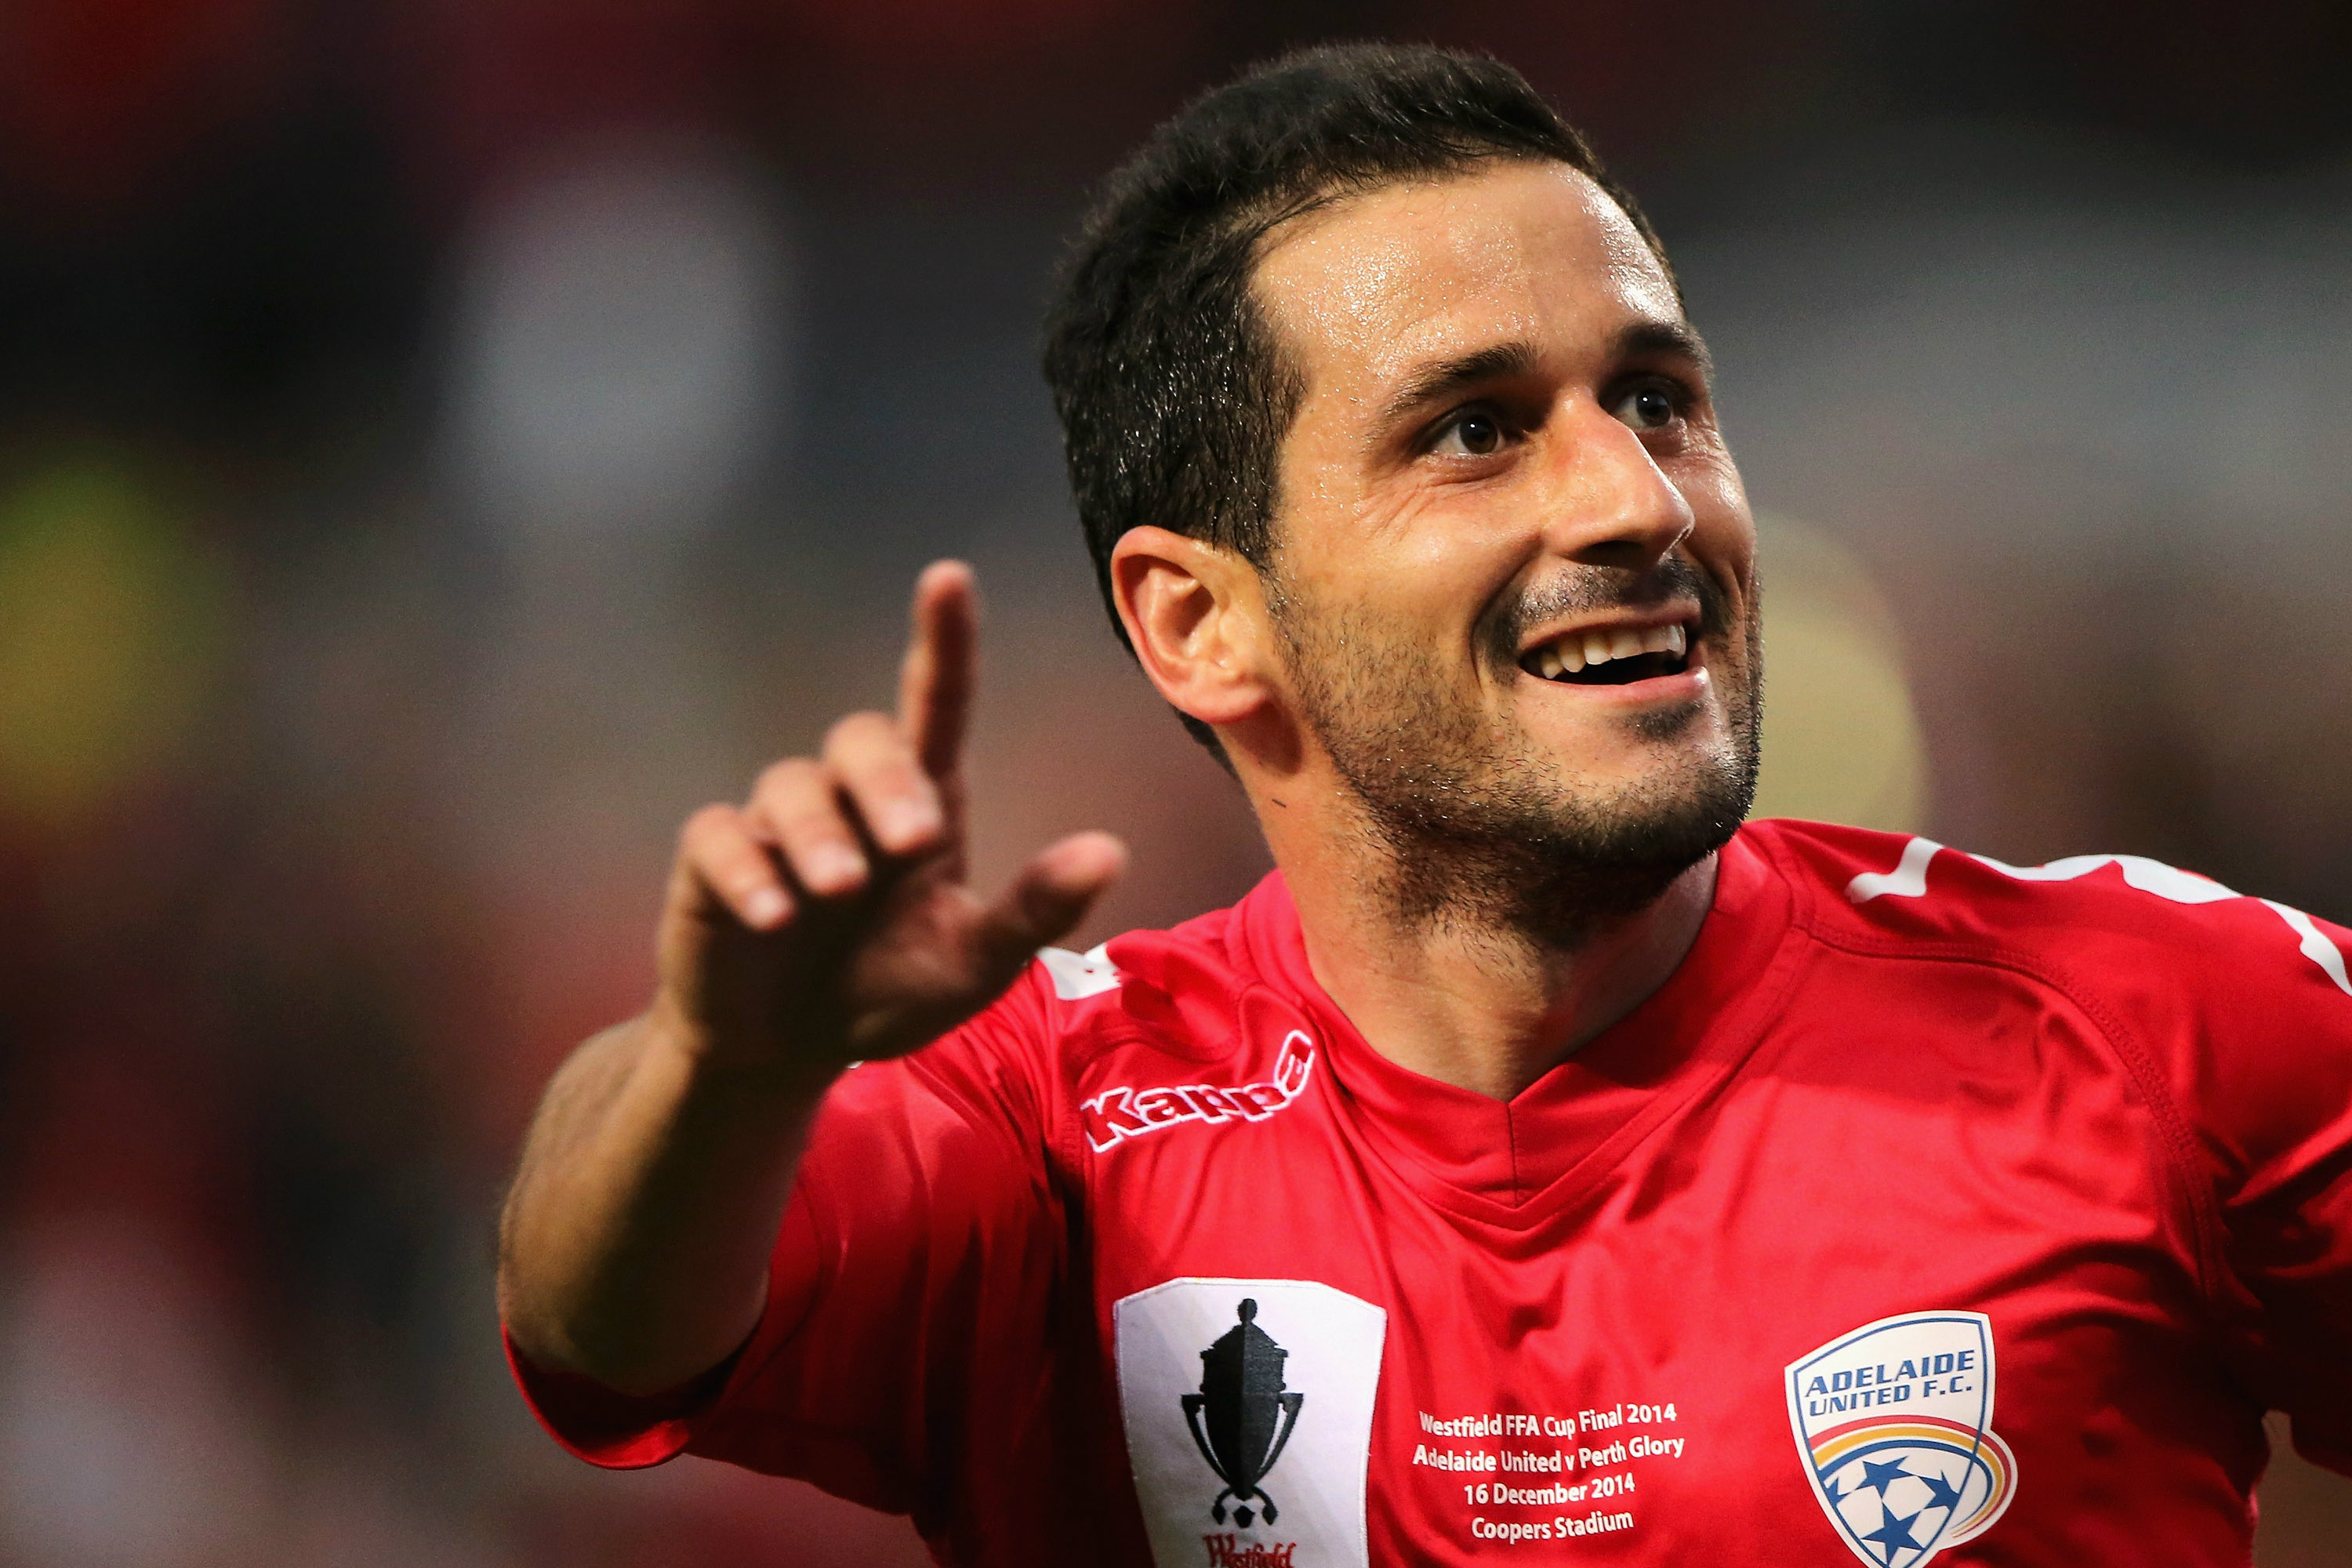 Sergio Cirio celebrates his match-winning goal in the FFA Cup 2014 Final.